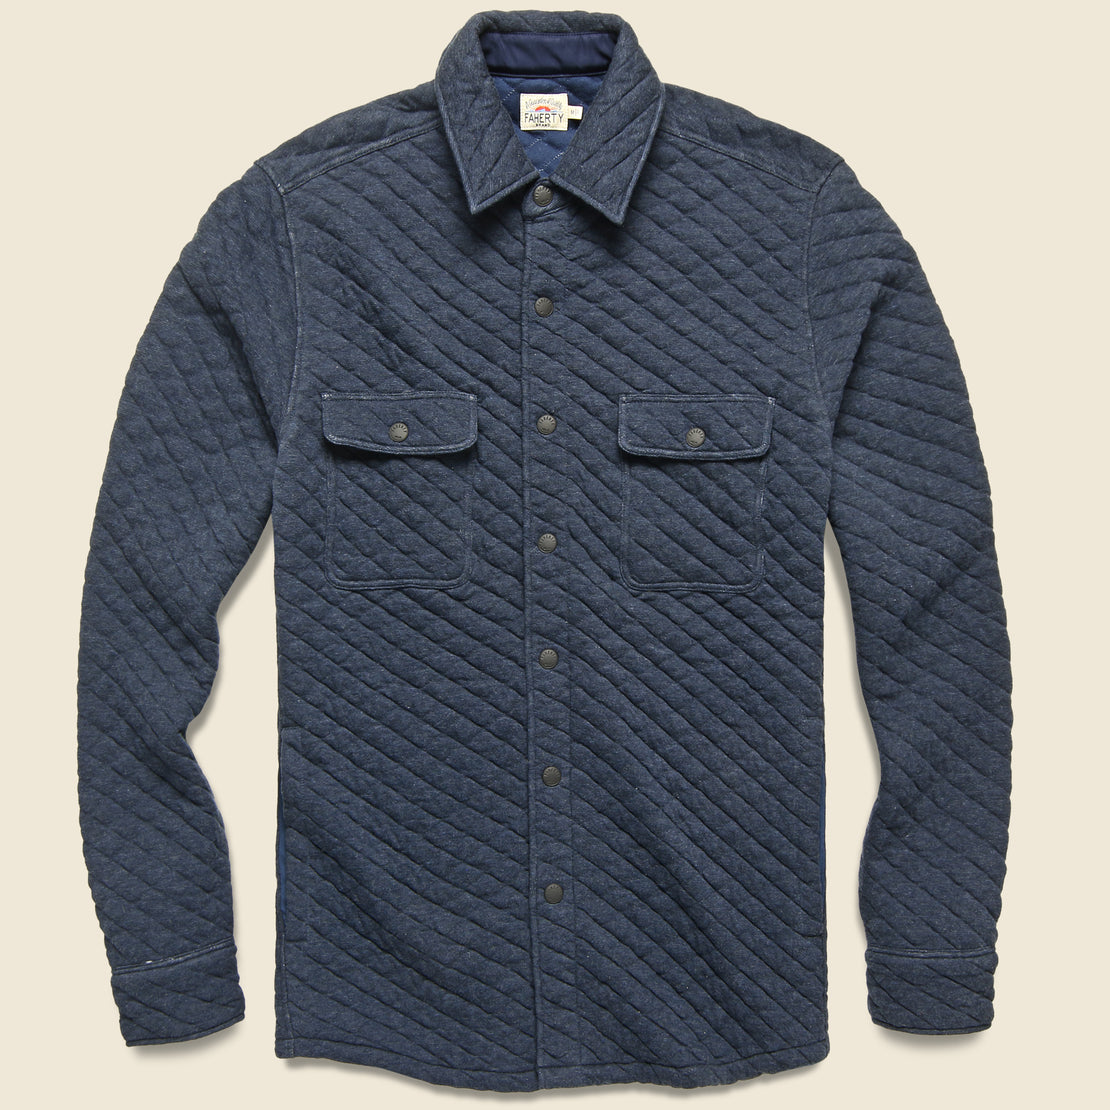 Faherty Quilted Belmar CPO Shirt Jacket - Dark Navy Heather